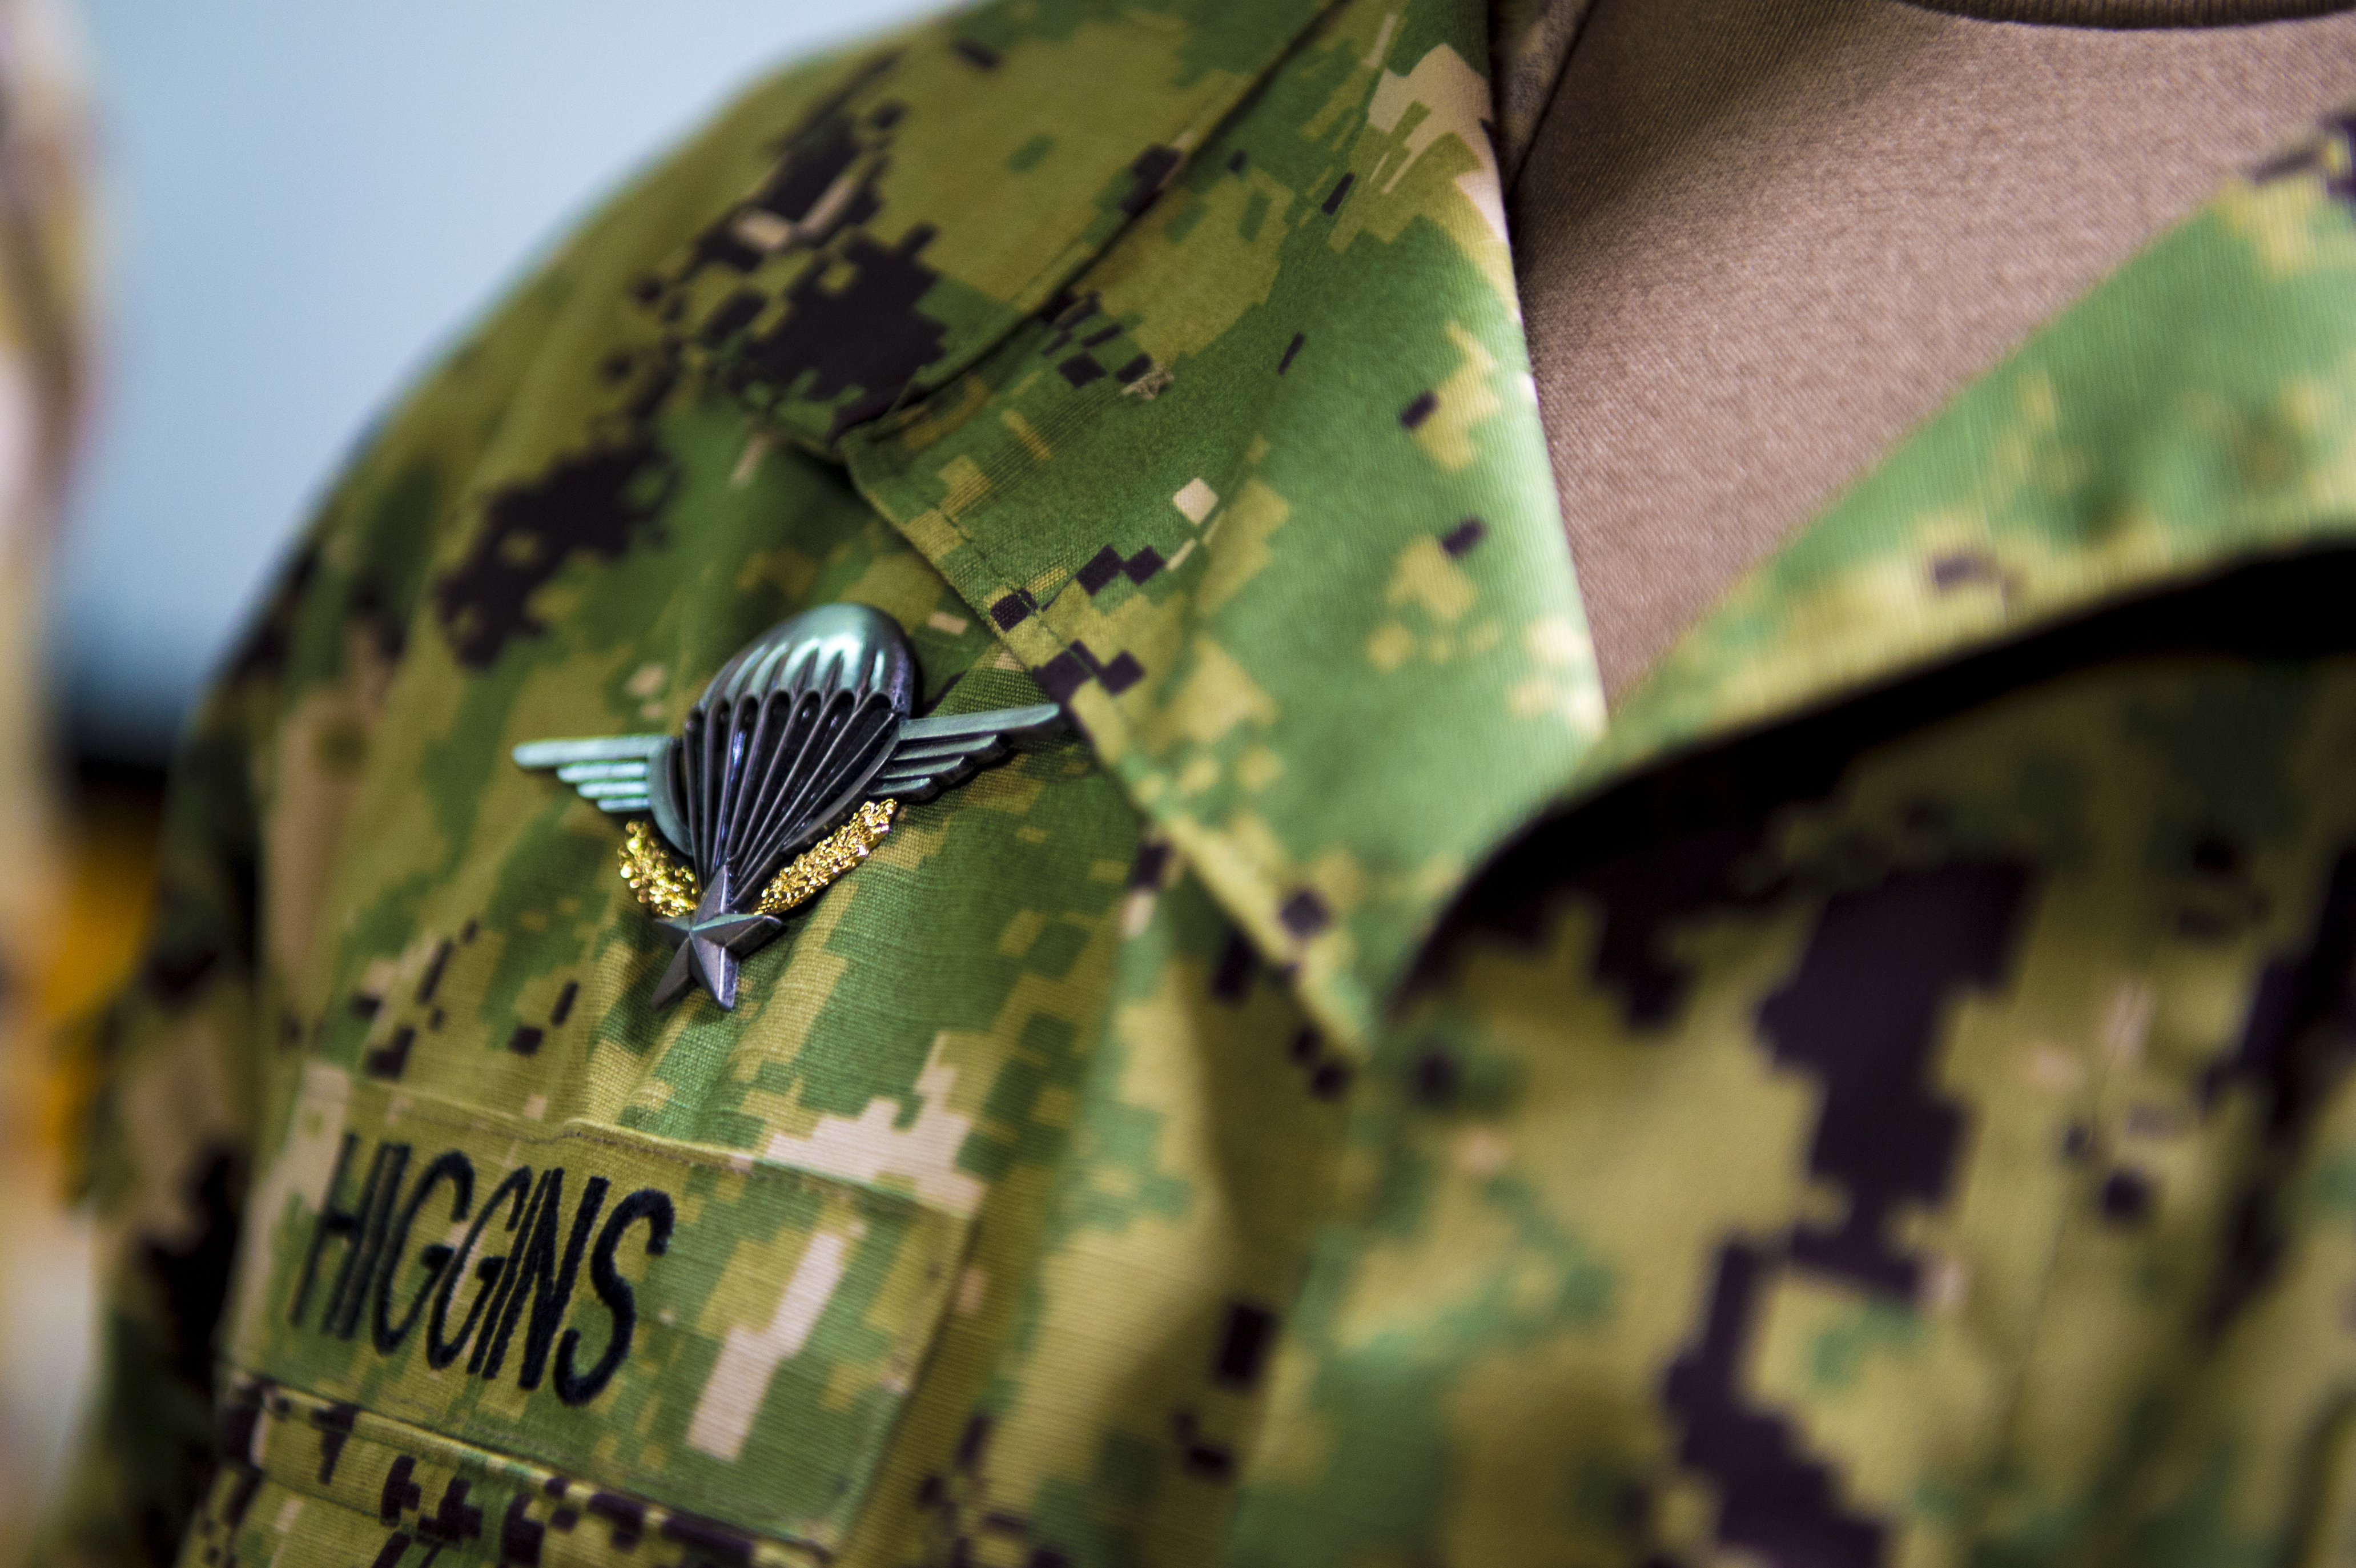 U.S. Navy Cmdr. Scott Higgins wears his French parachutist badge after jumping with the French on Camp Lemonnier, Djibouti, June 6, 2018. Both countries trained together in preparation for the jump, parachuting in remembrance and honor of our nations' friendship and alliance in World War II. (U.S. Air Force photo by Senior Airman Scott Jackson/Released)